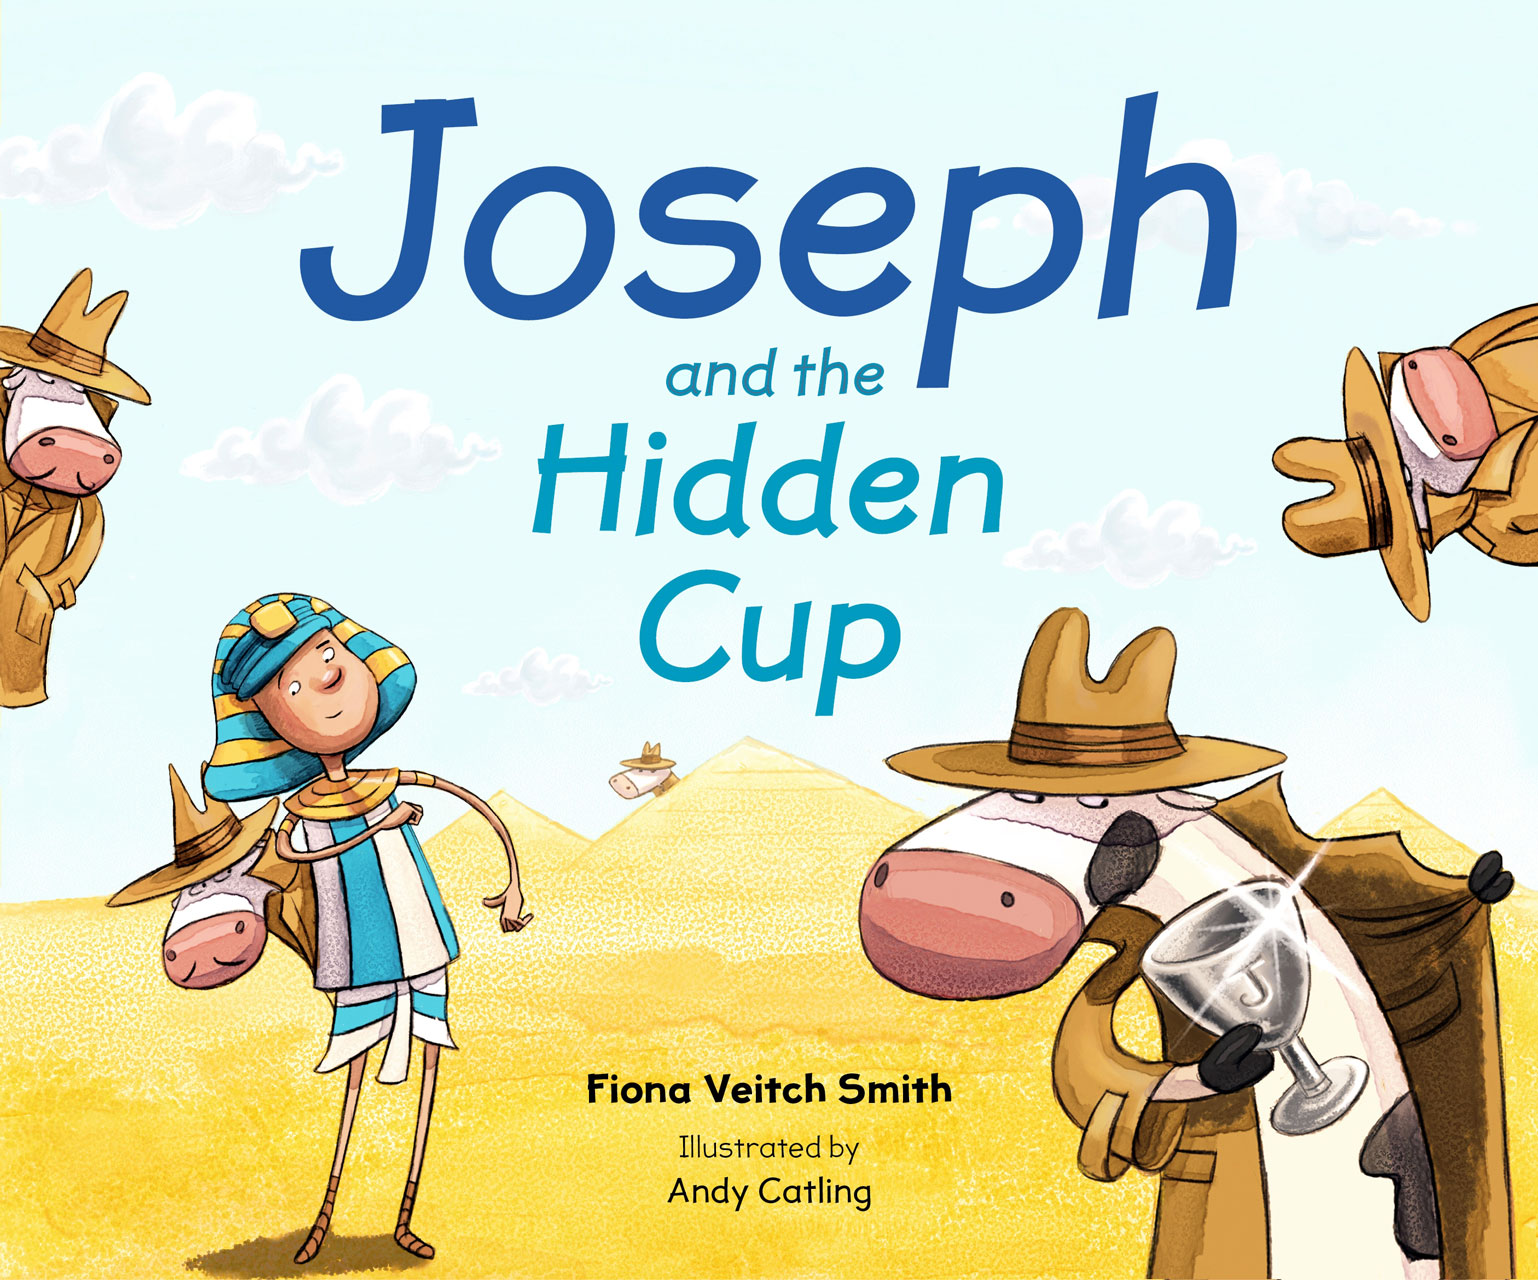 Joseph and the Hidden Cup